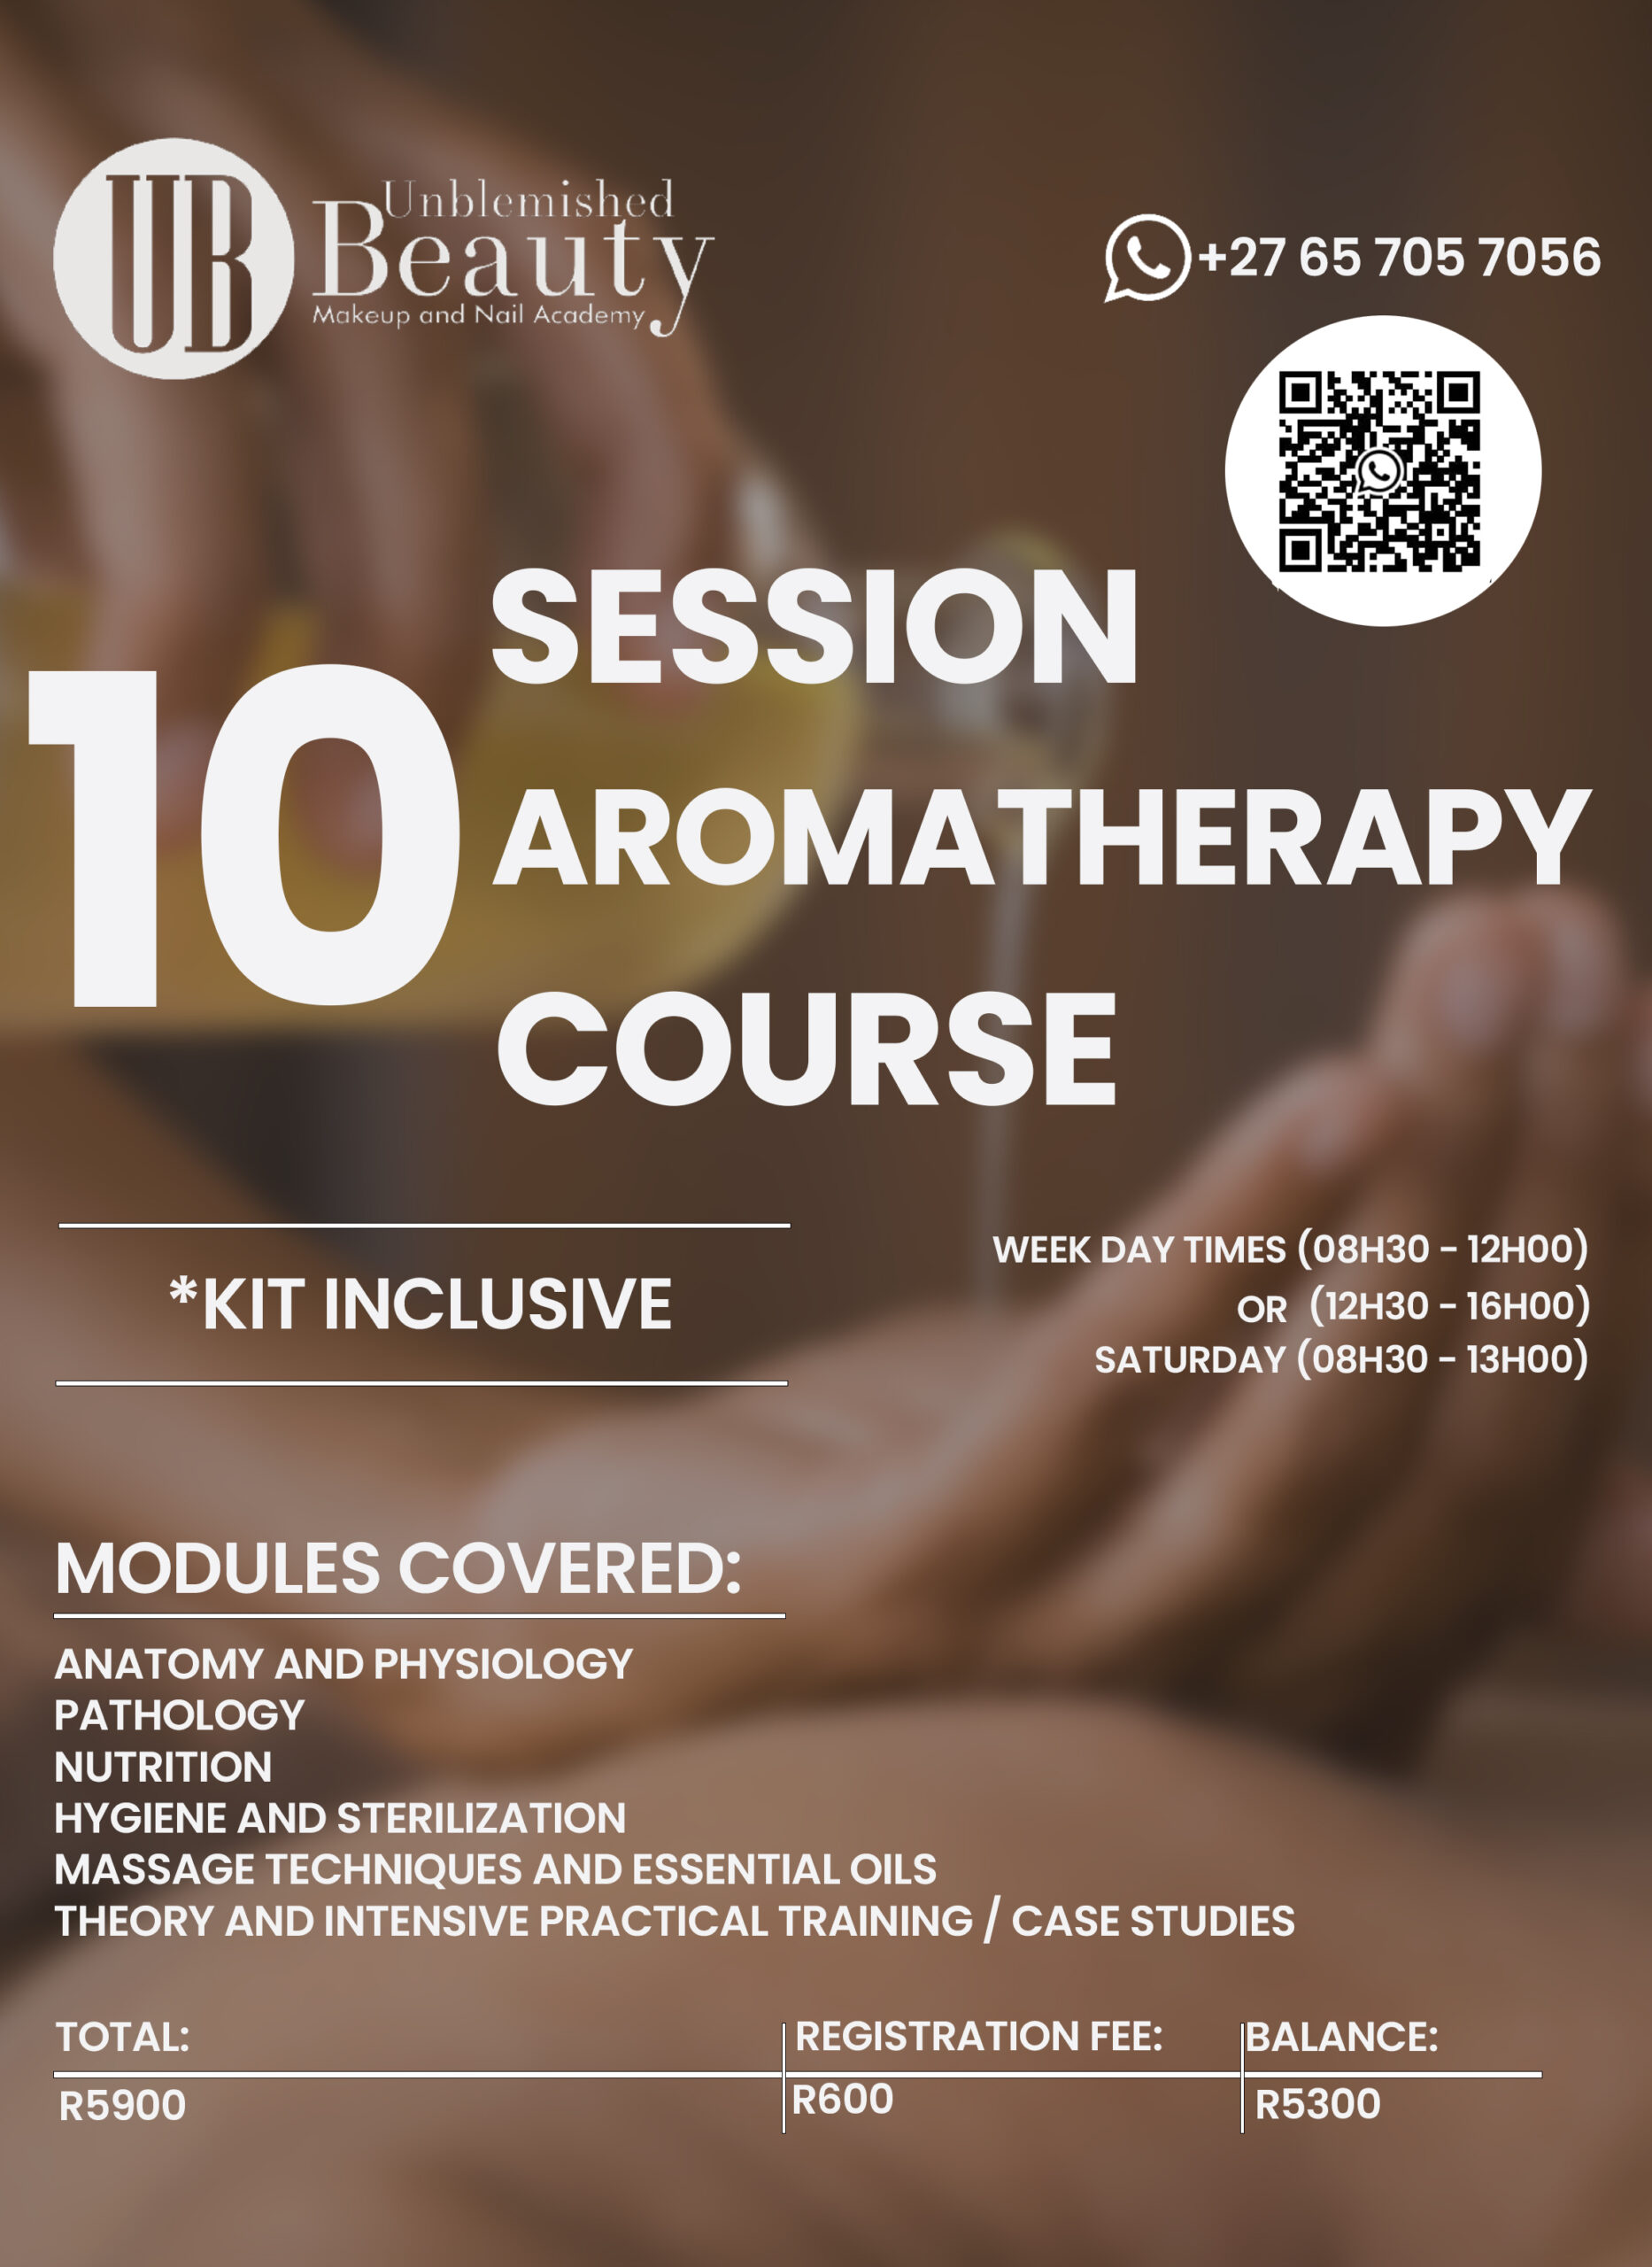 Unblemished Beauty Course Posters- Aromatherapy 2